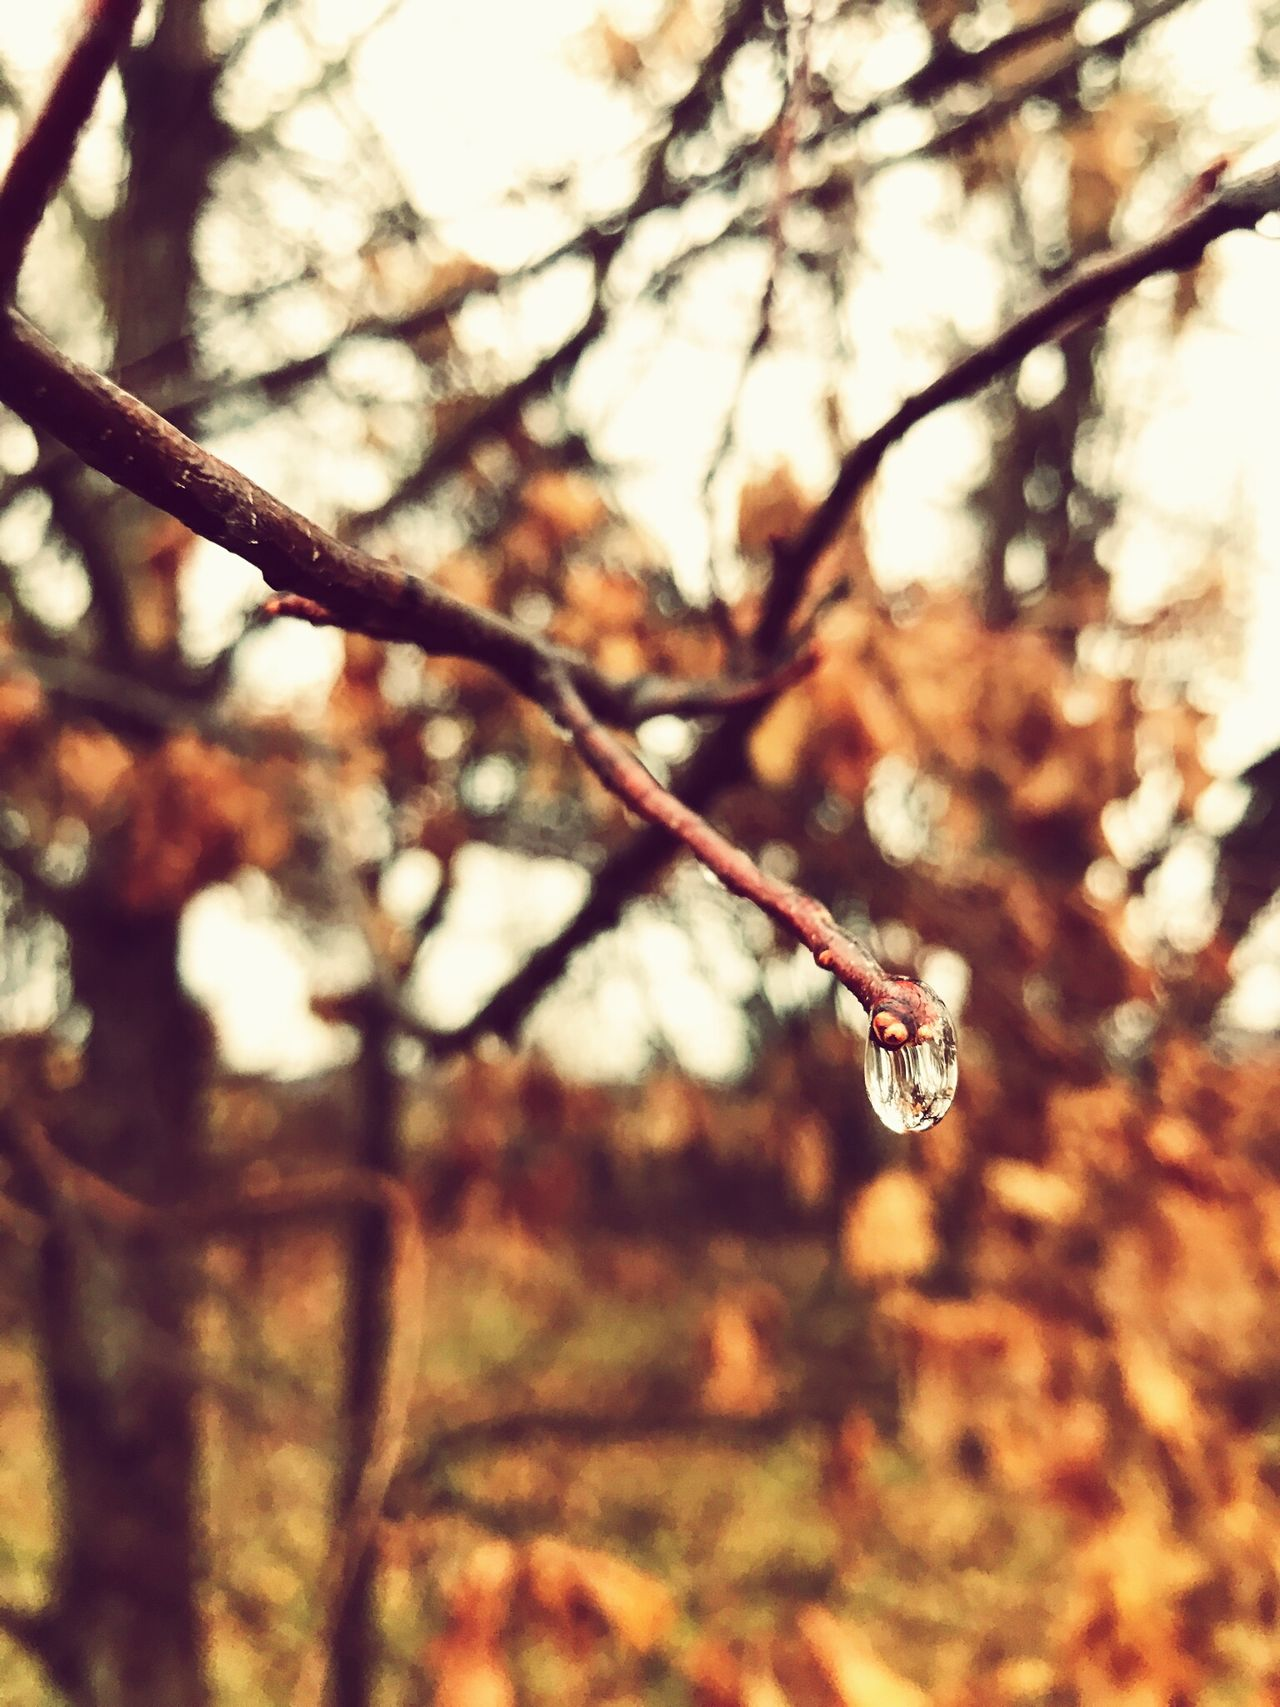 Focus On Foreground Nature Tree No People Outdoors Day Close-up Branch Beauty In Nature Autumn Fall Rain RainDrop Rainy